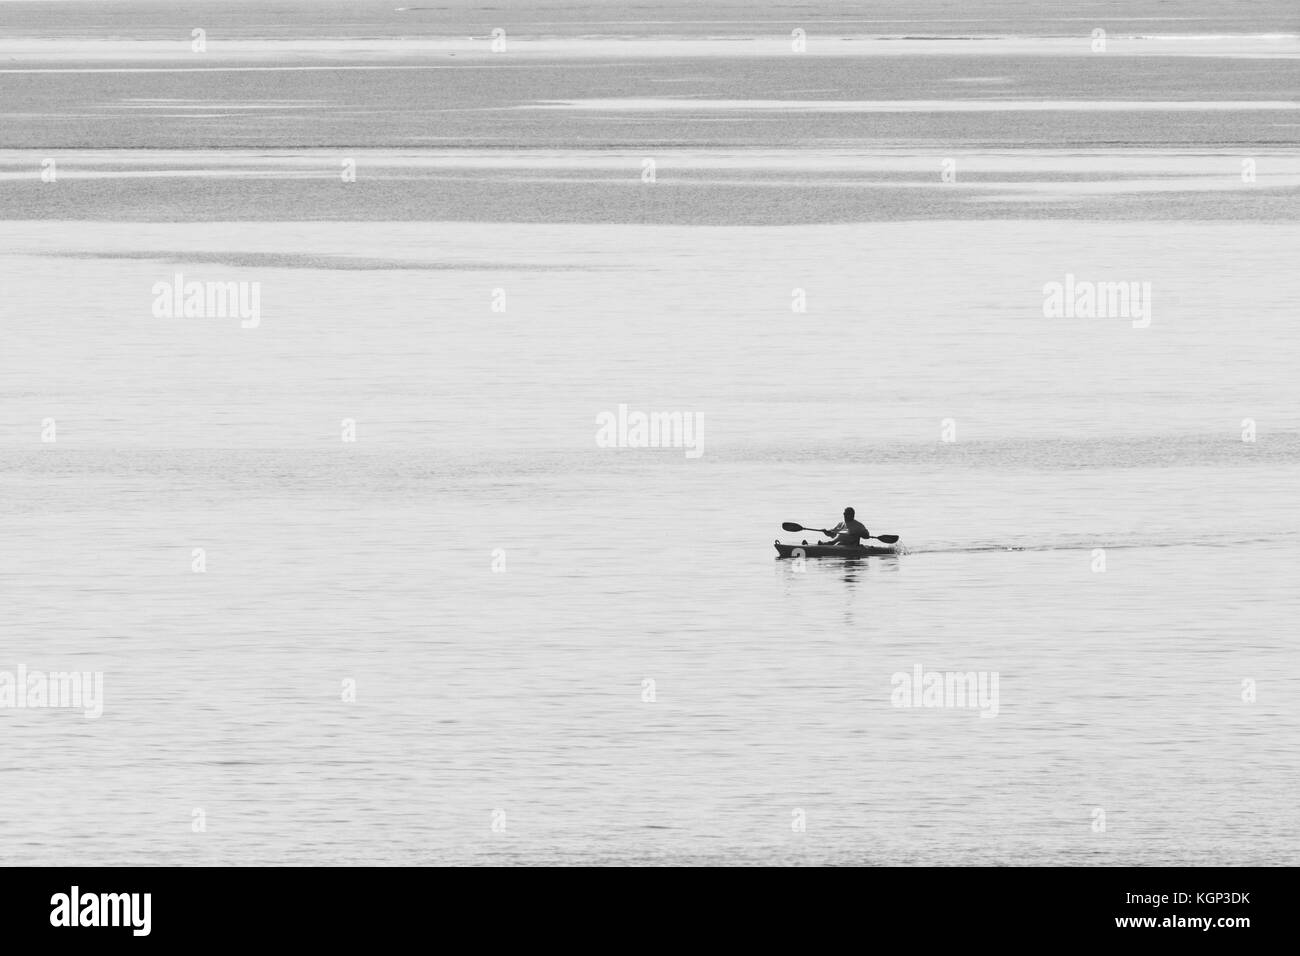 Black & white image of sea angler in sea kayak silhouetted against water. Line fishing for mackerel and similar - Stock Image